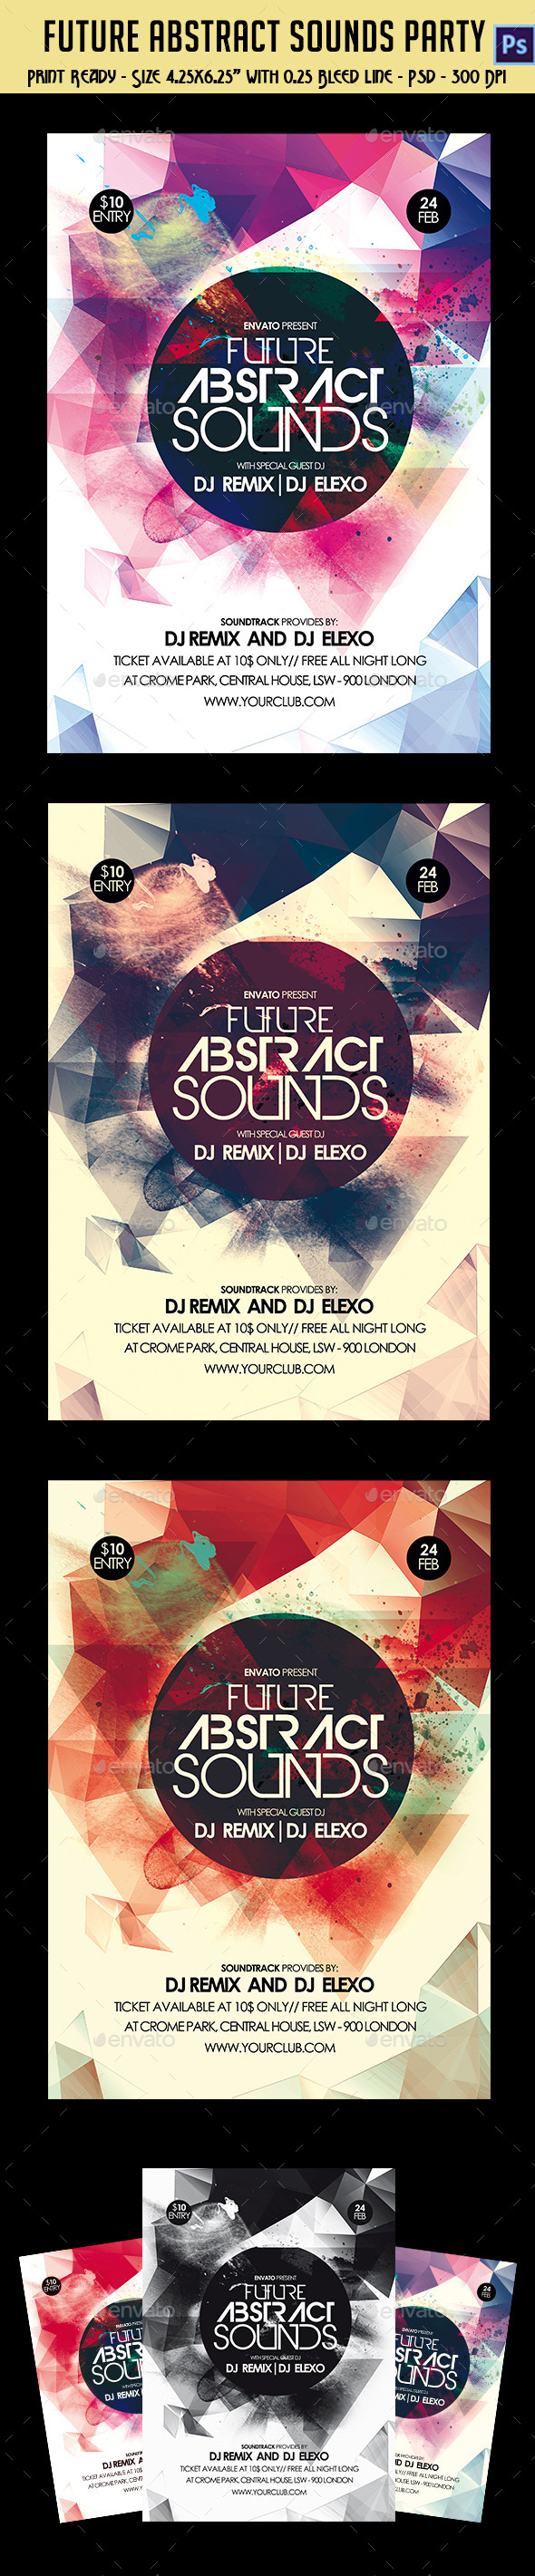 Future Abstract Sounds Party Flyer - Clubs & Parties Events